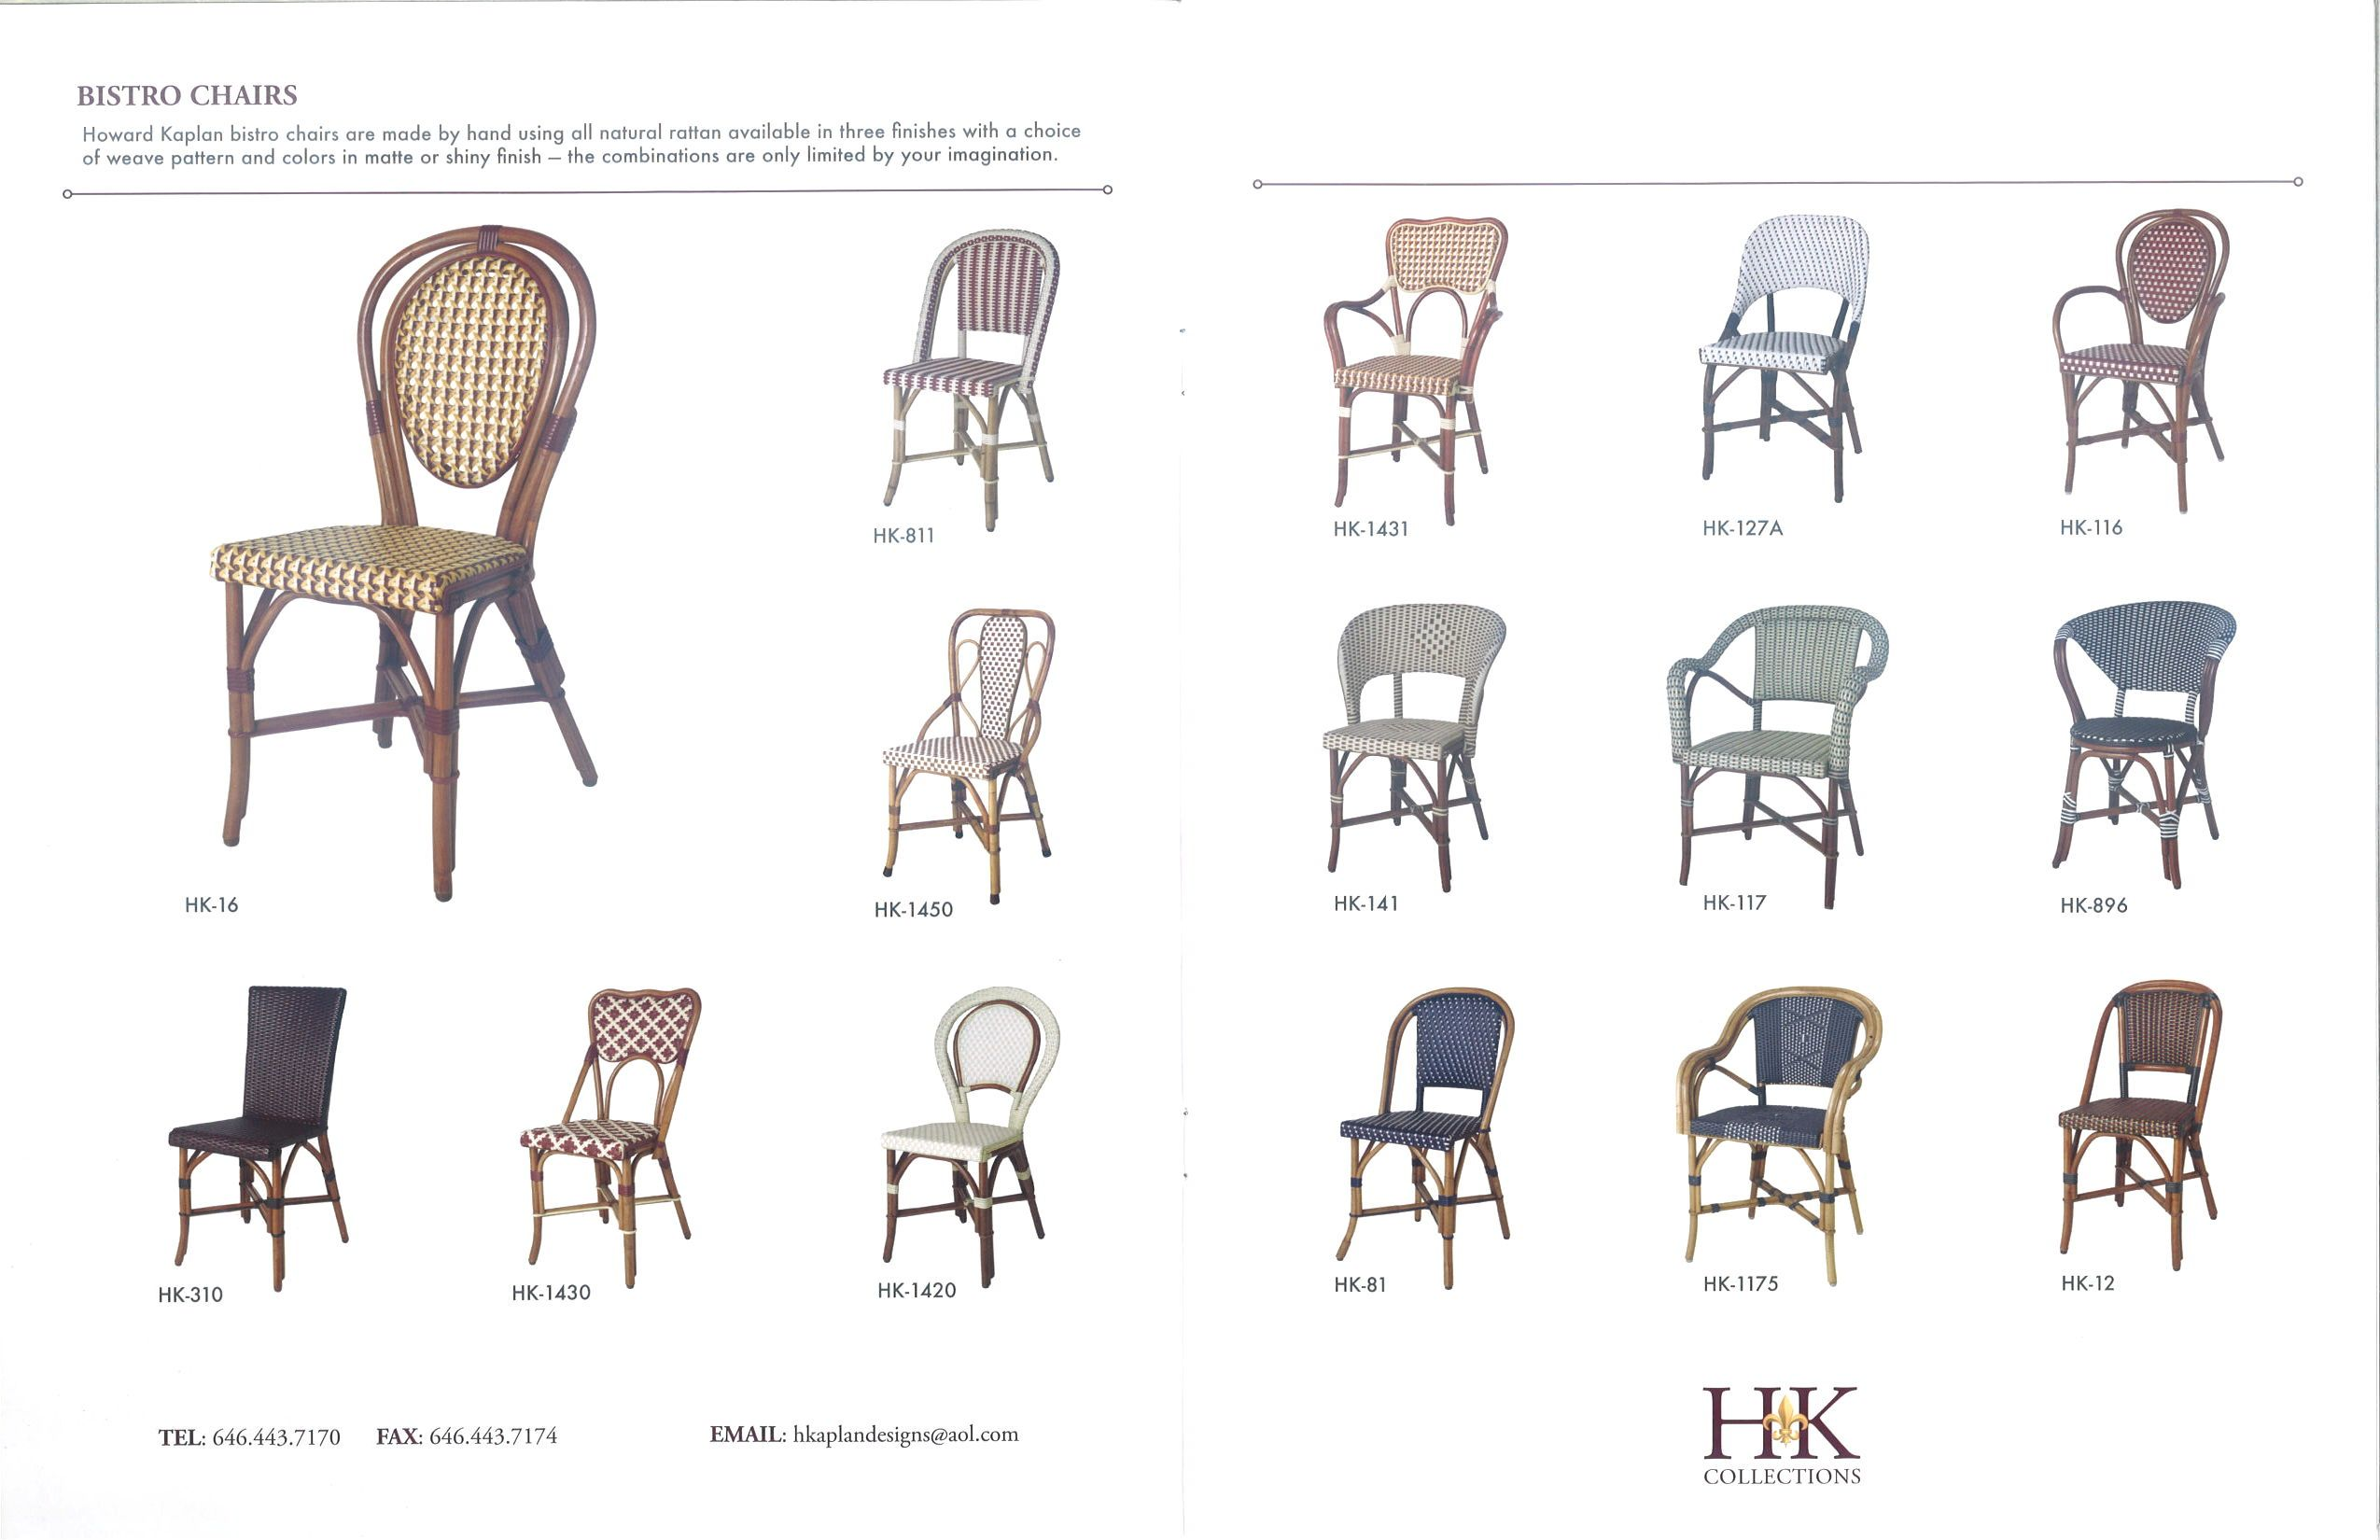 Merveilleux Rattan French Bistro Chairs   Howard Kaplan